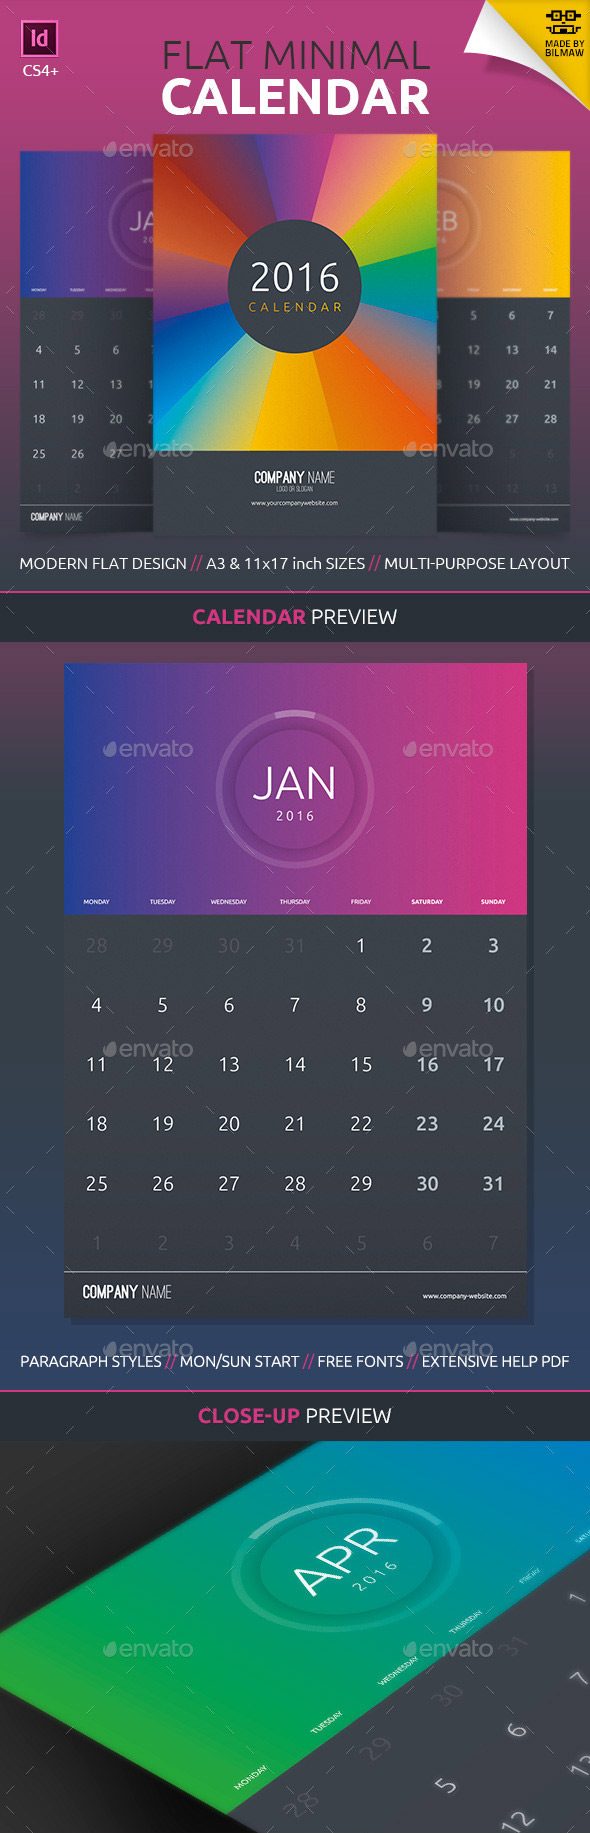 Creative Monthly Calendar - Printable Template